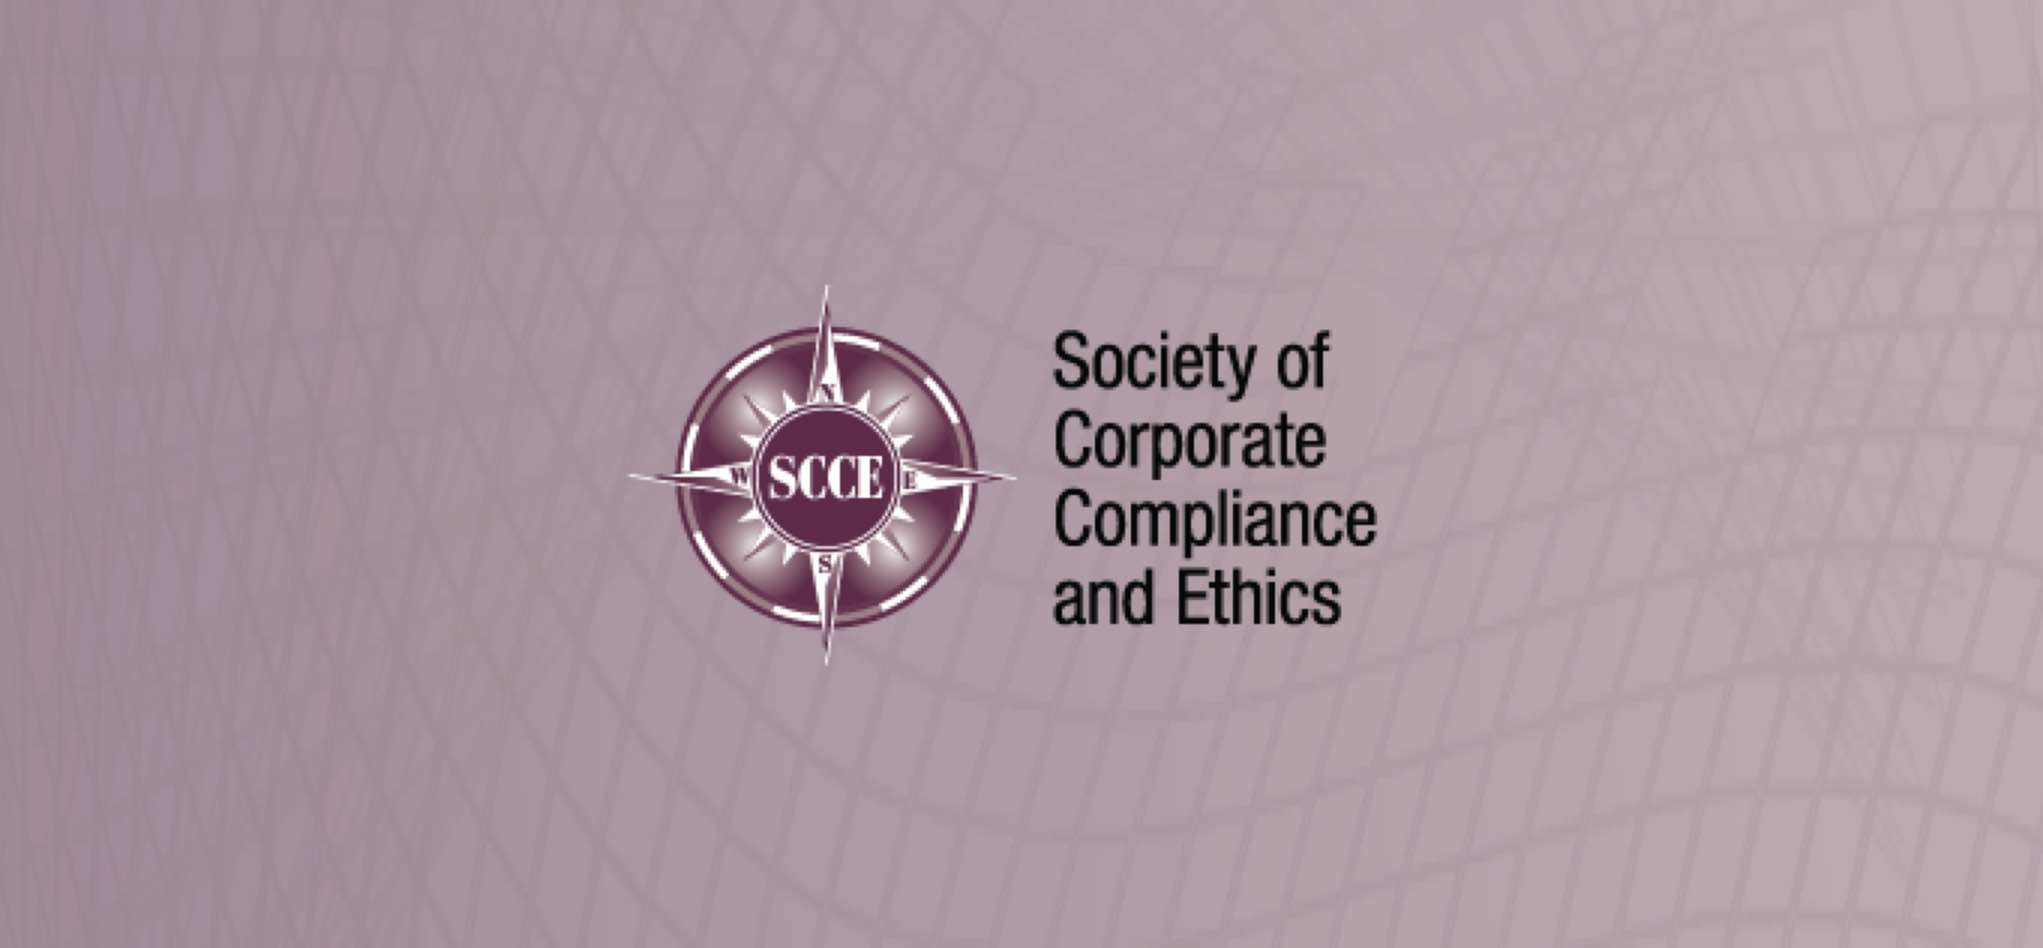 compliance versus ethics Interestingly compliance which cannot cover 100% of the situations relies of ethics to guide you when the rules around compliance aren't clear for example the reality of social networking changes some of the compliance rules around using social networking during business hours.